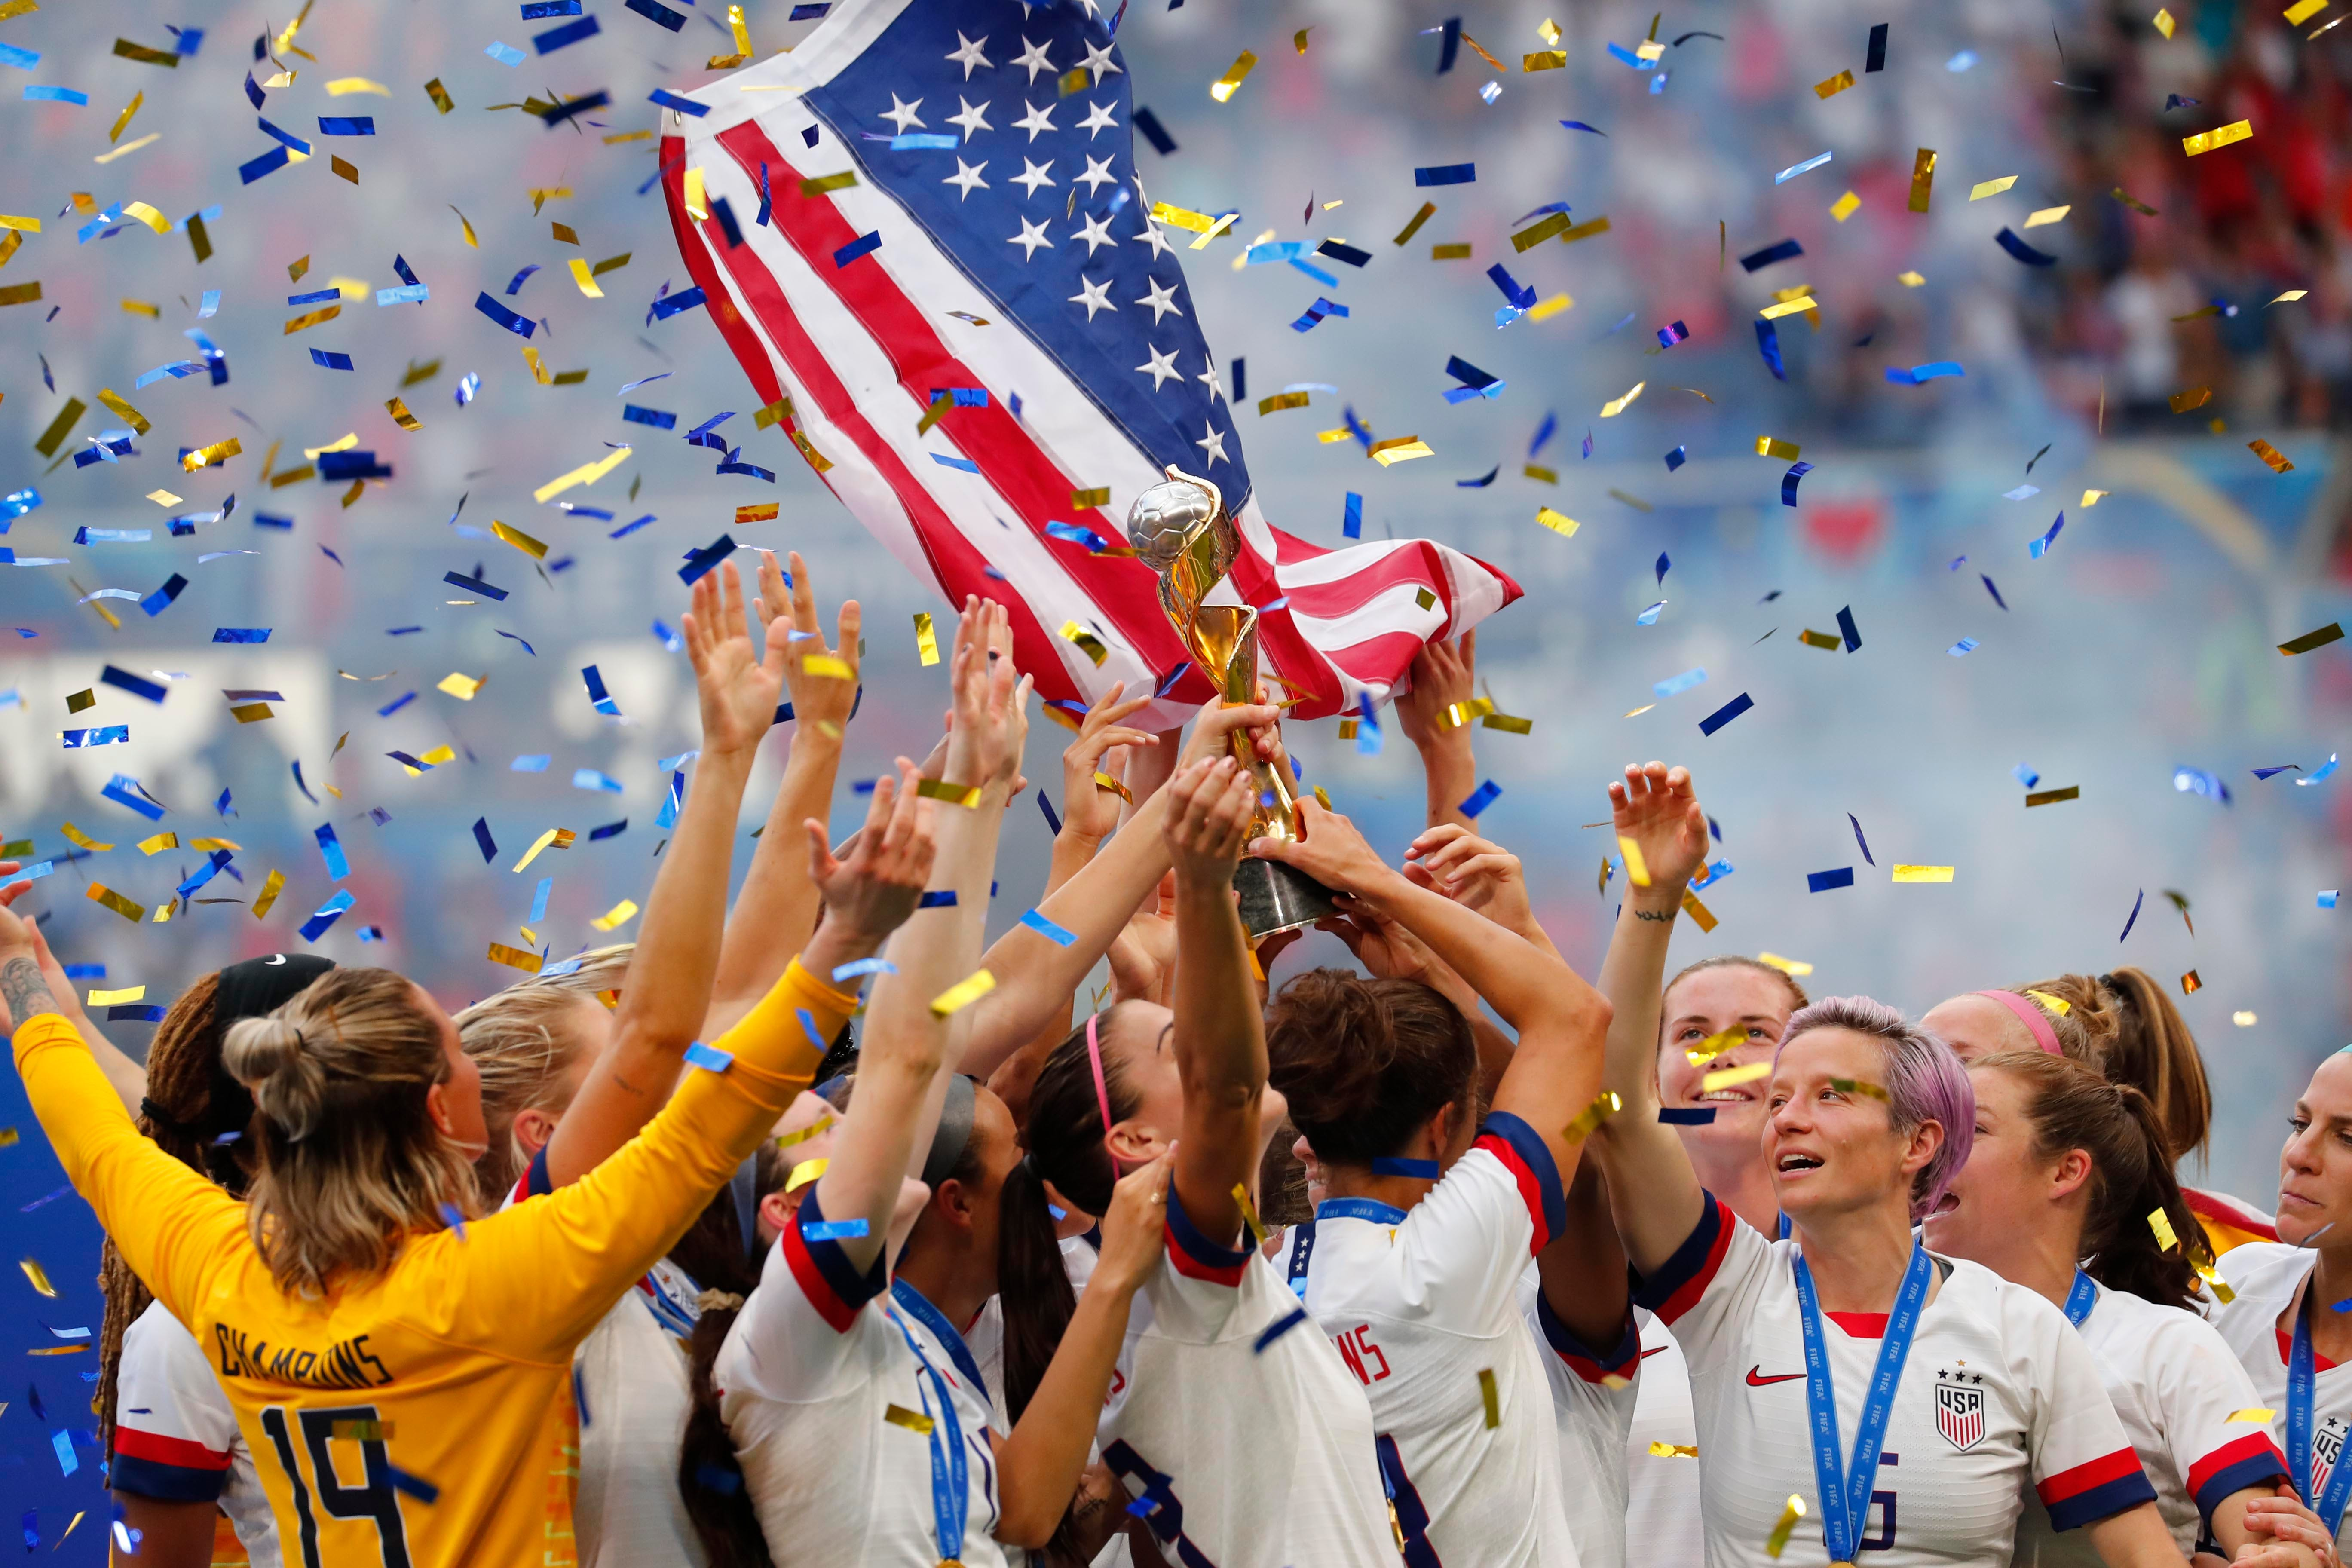 Women's national soccer team lawsuit gets a May 5 court date in equal pay case